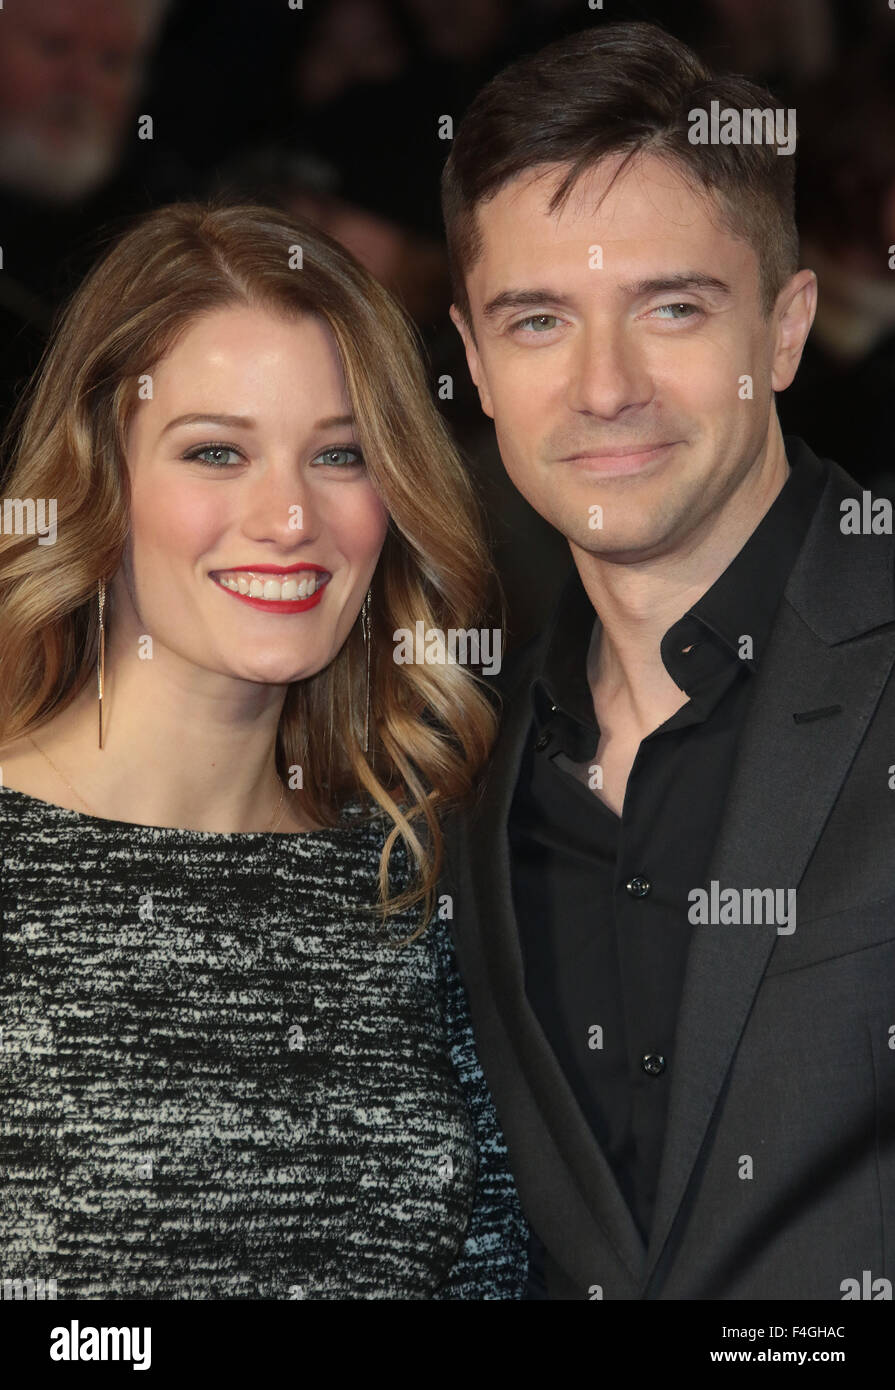 London, UK. 17th October, 2015. Ashley Hinshaw and Topher Grace  attending 'Truth' screening at BFI London - Stock Image